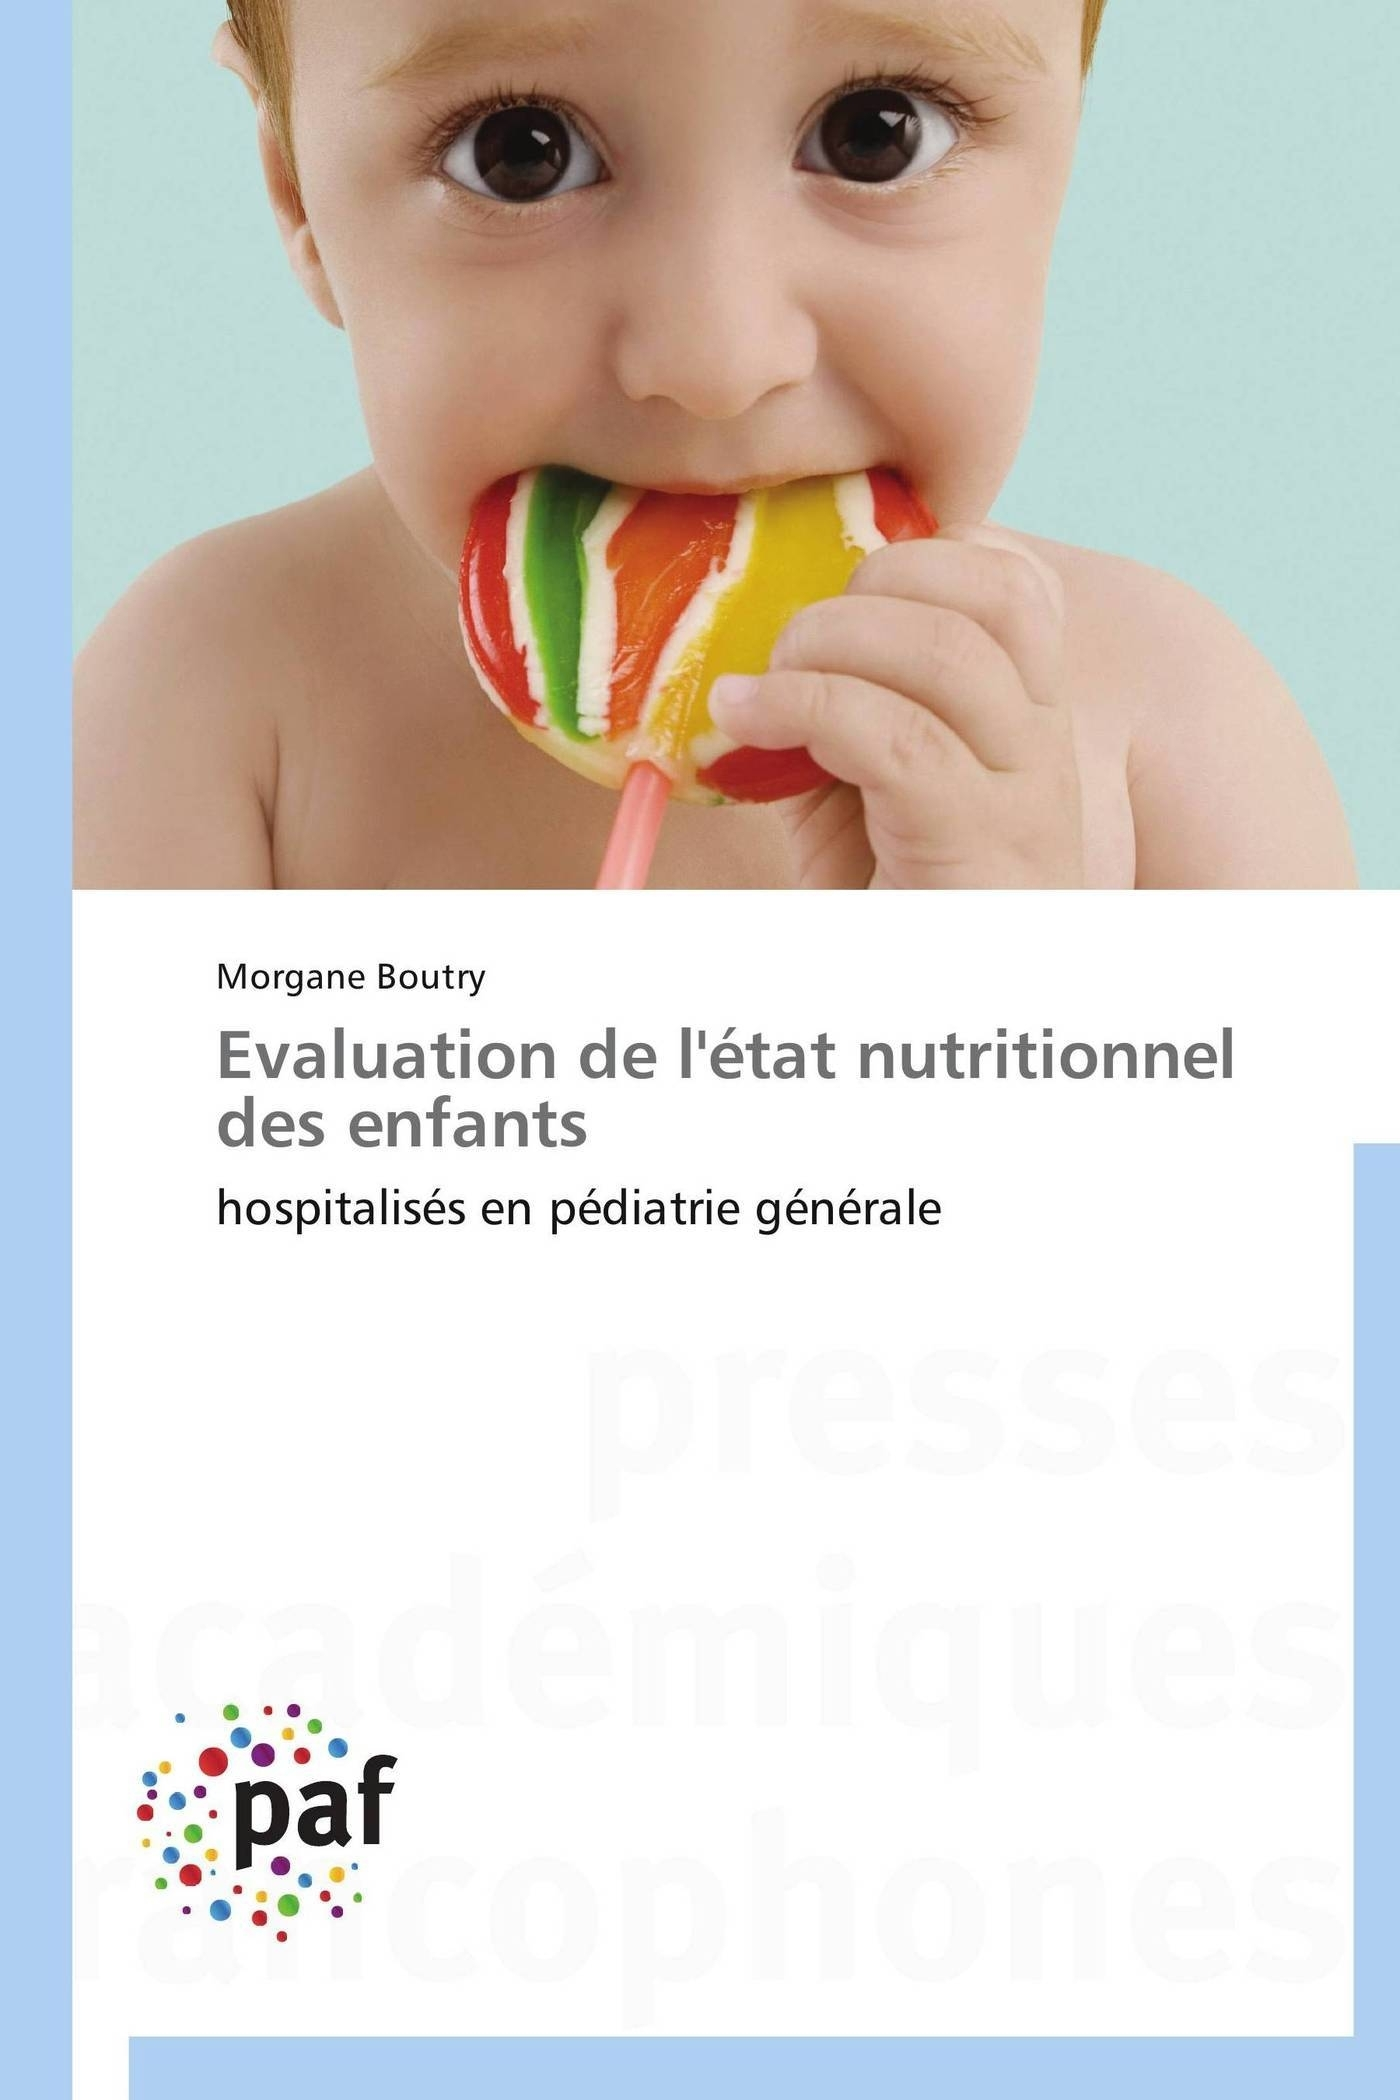 EVALUATION DE L'ETAT NUTRITIONNEL DES ENFANTS